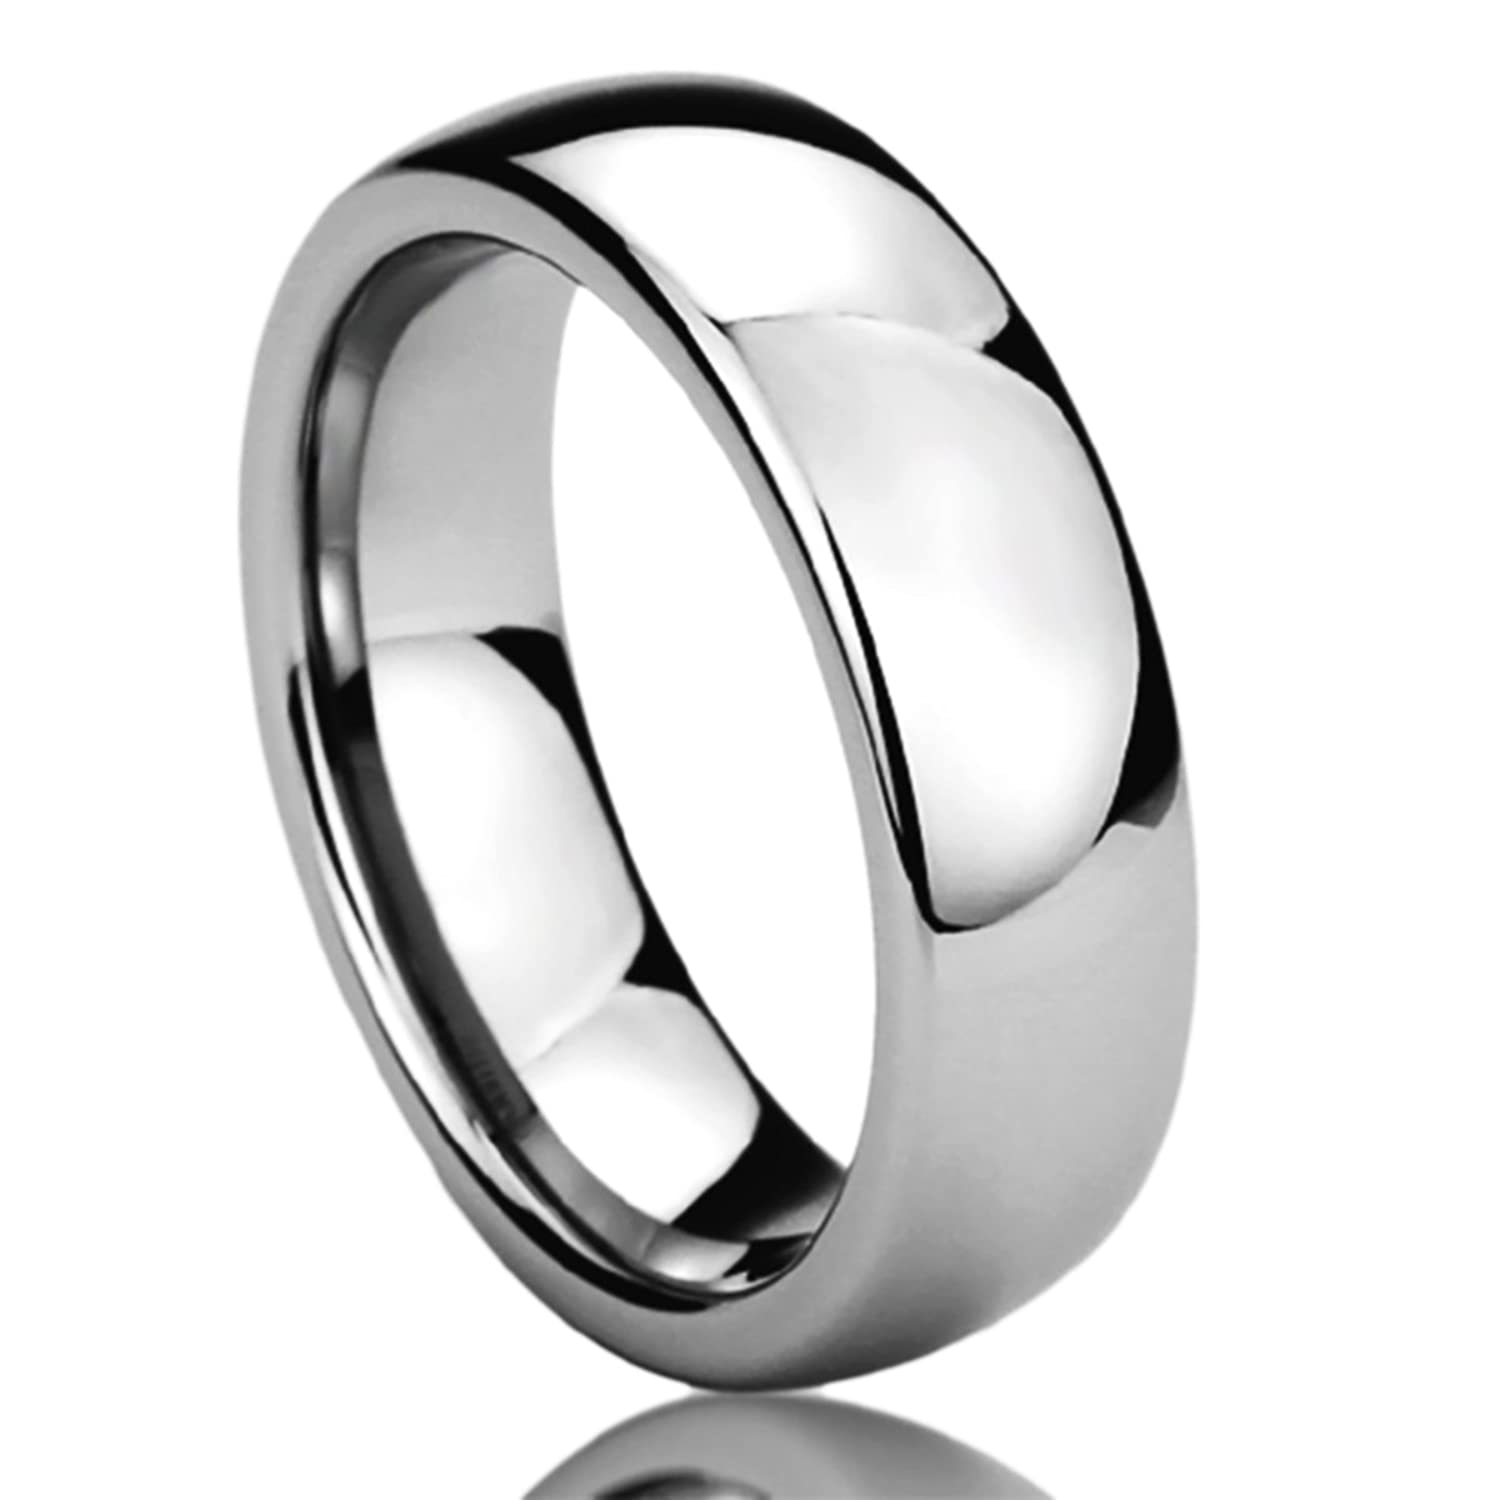 6MM Stainless Steel Mens Womens Rings High Polished Classy Domed